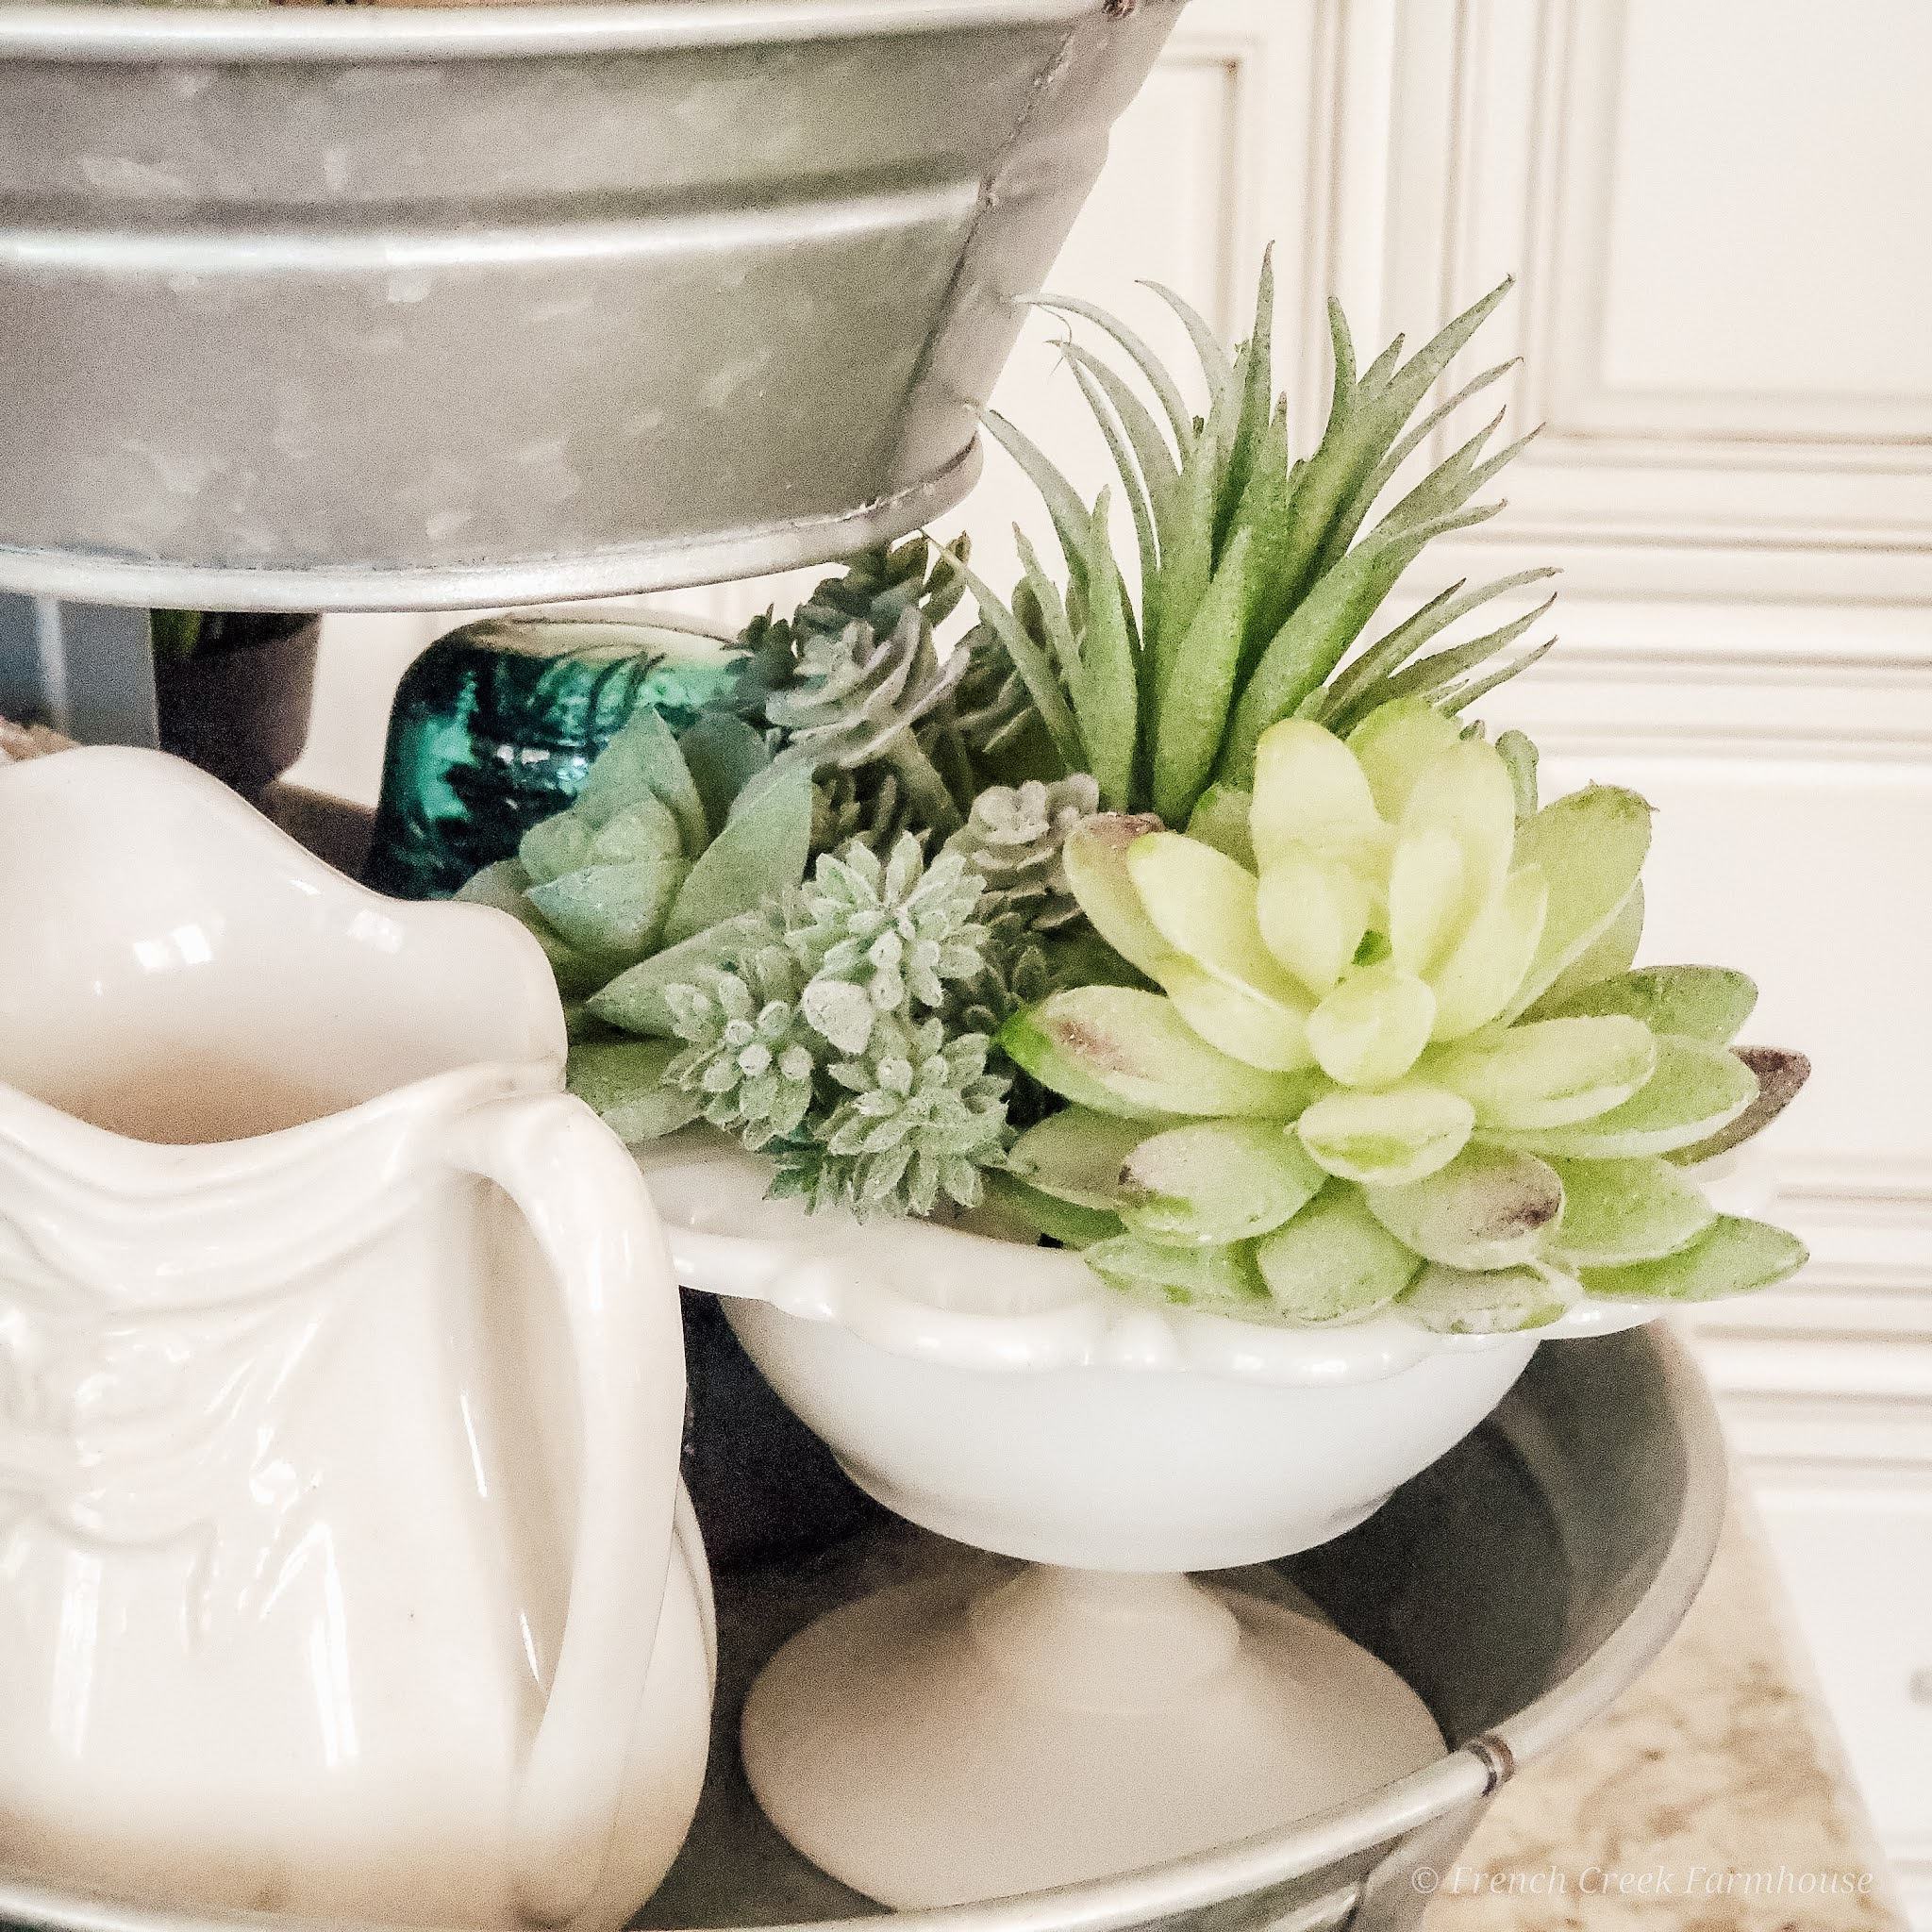 St. Patrick's Day Tiered Tray Decorating   French Creek Farmhouse